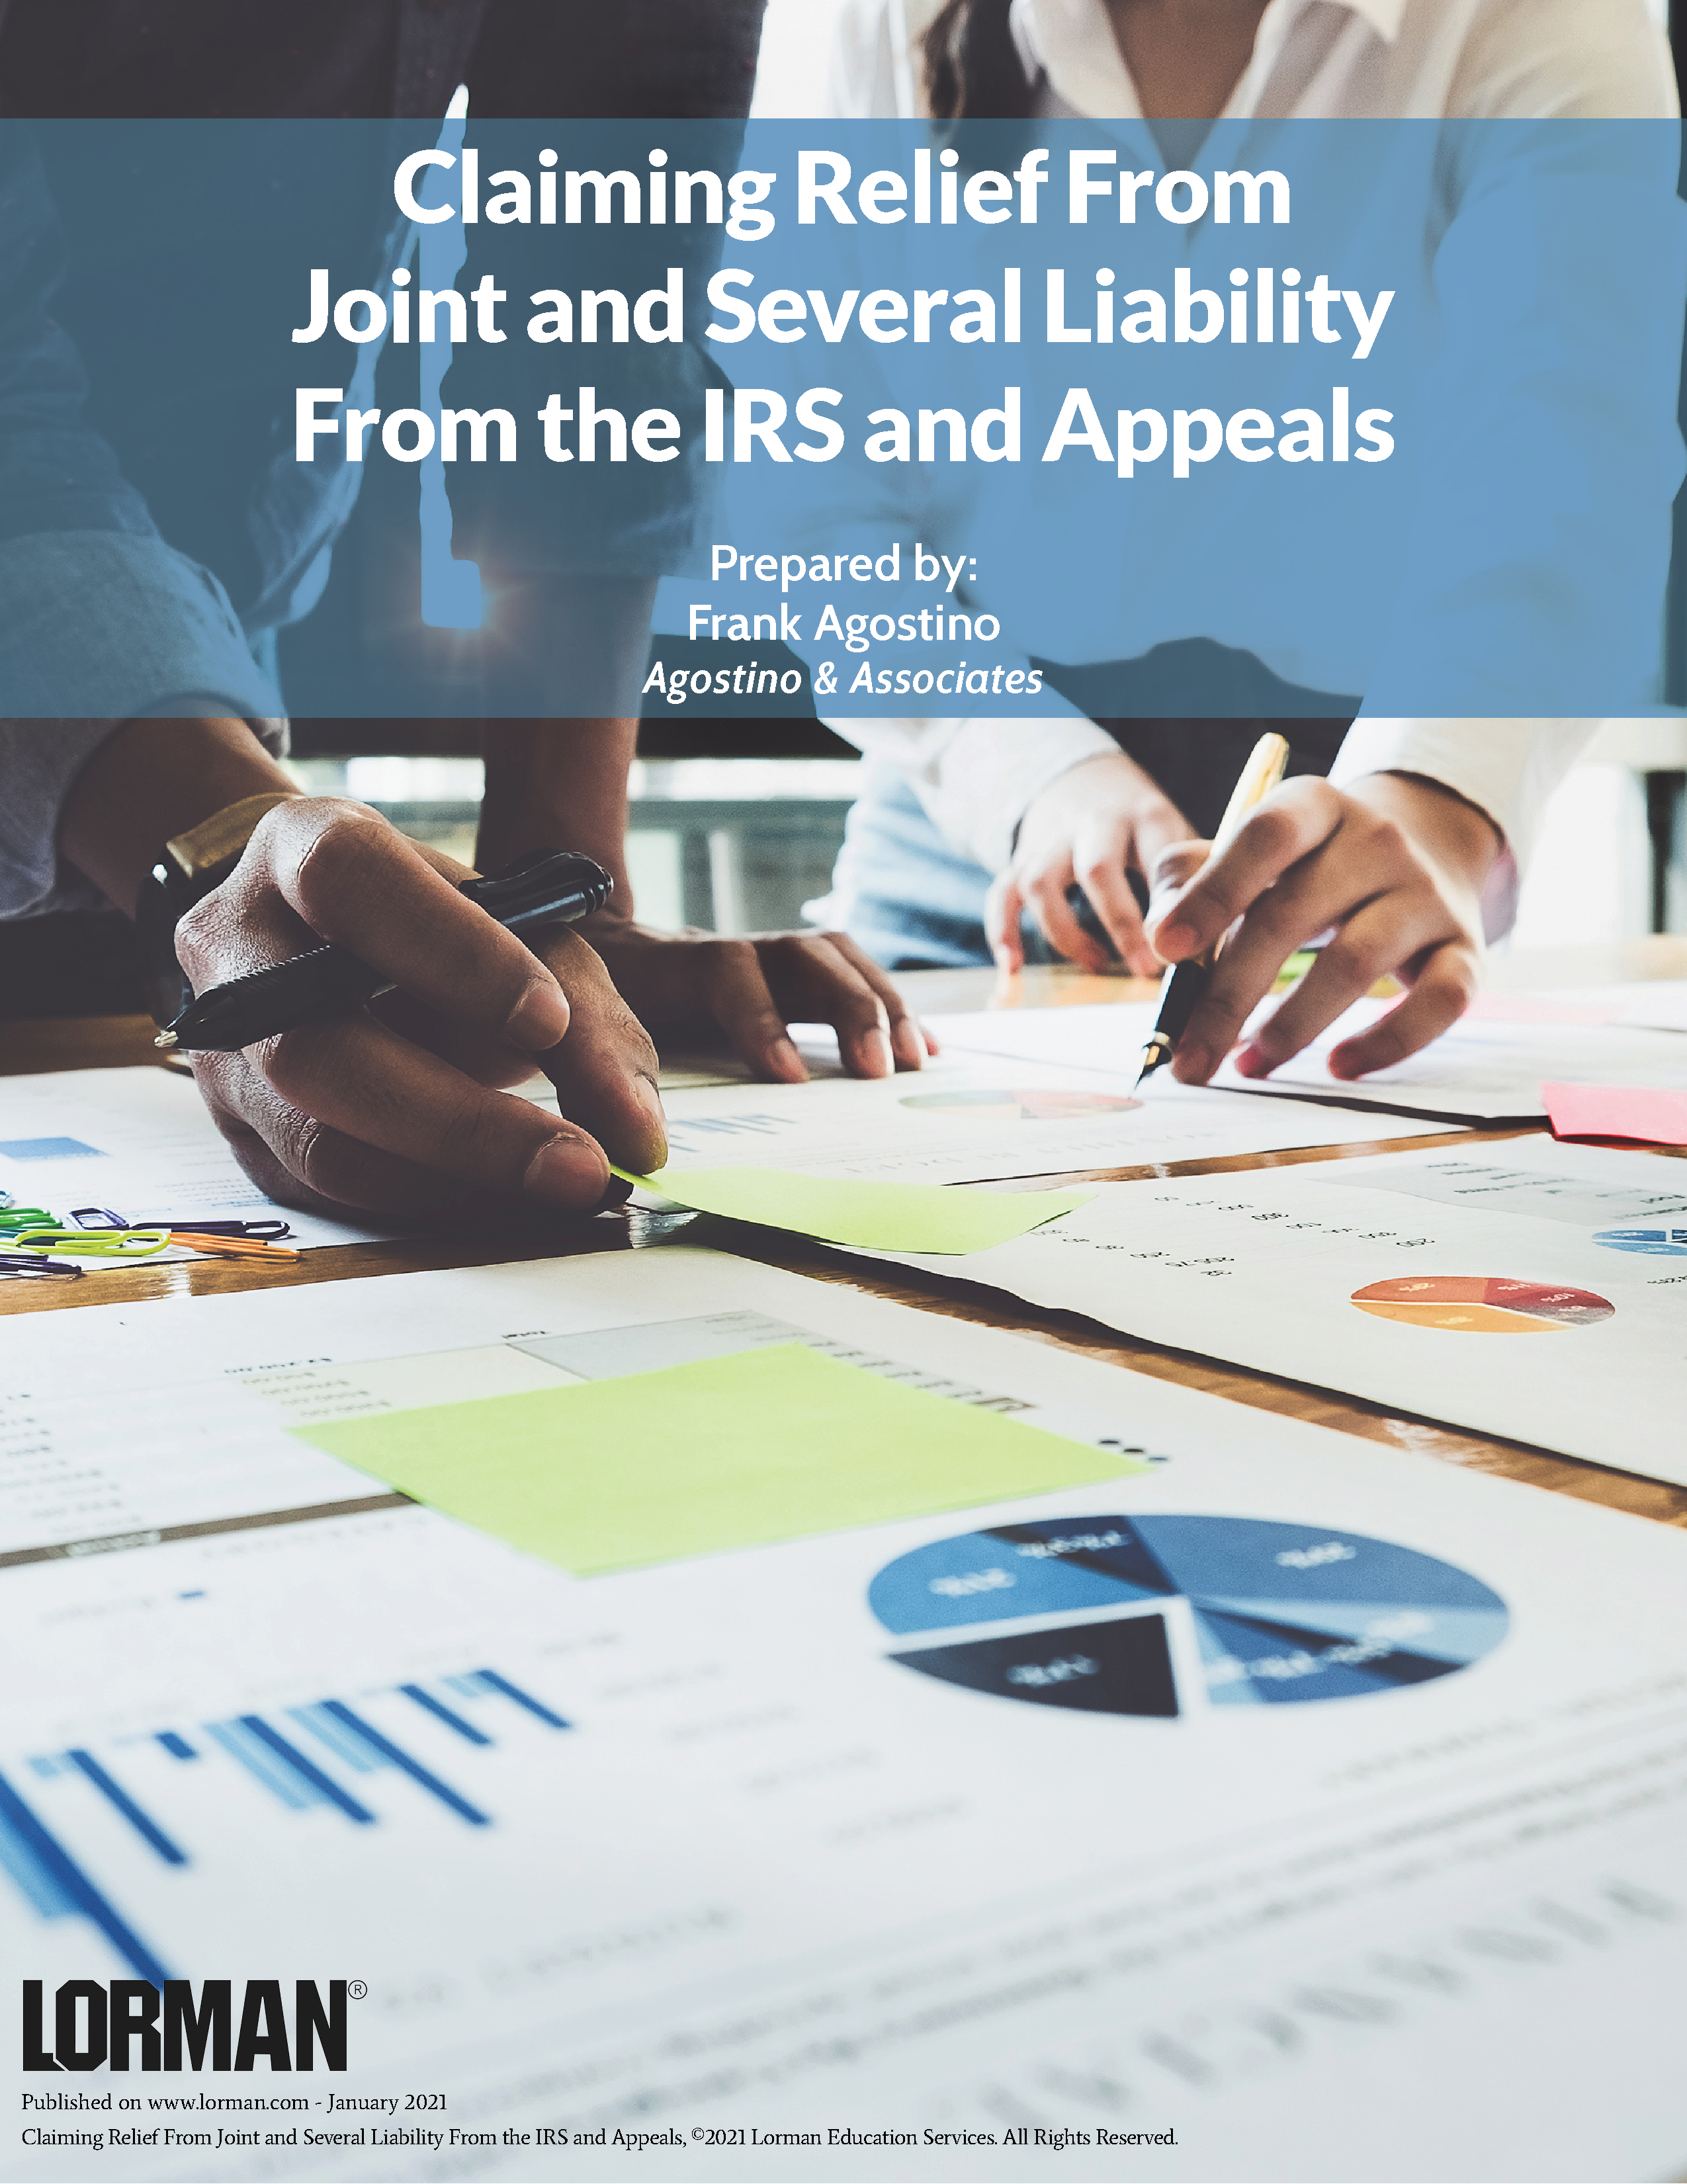 Claiming Relief From Joint and Several Liability From the IRS and Appeals